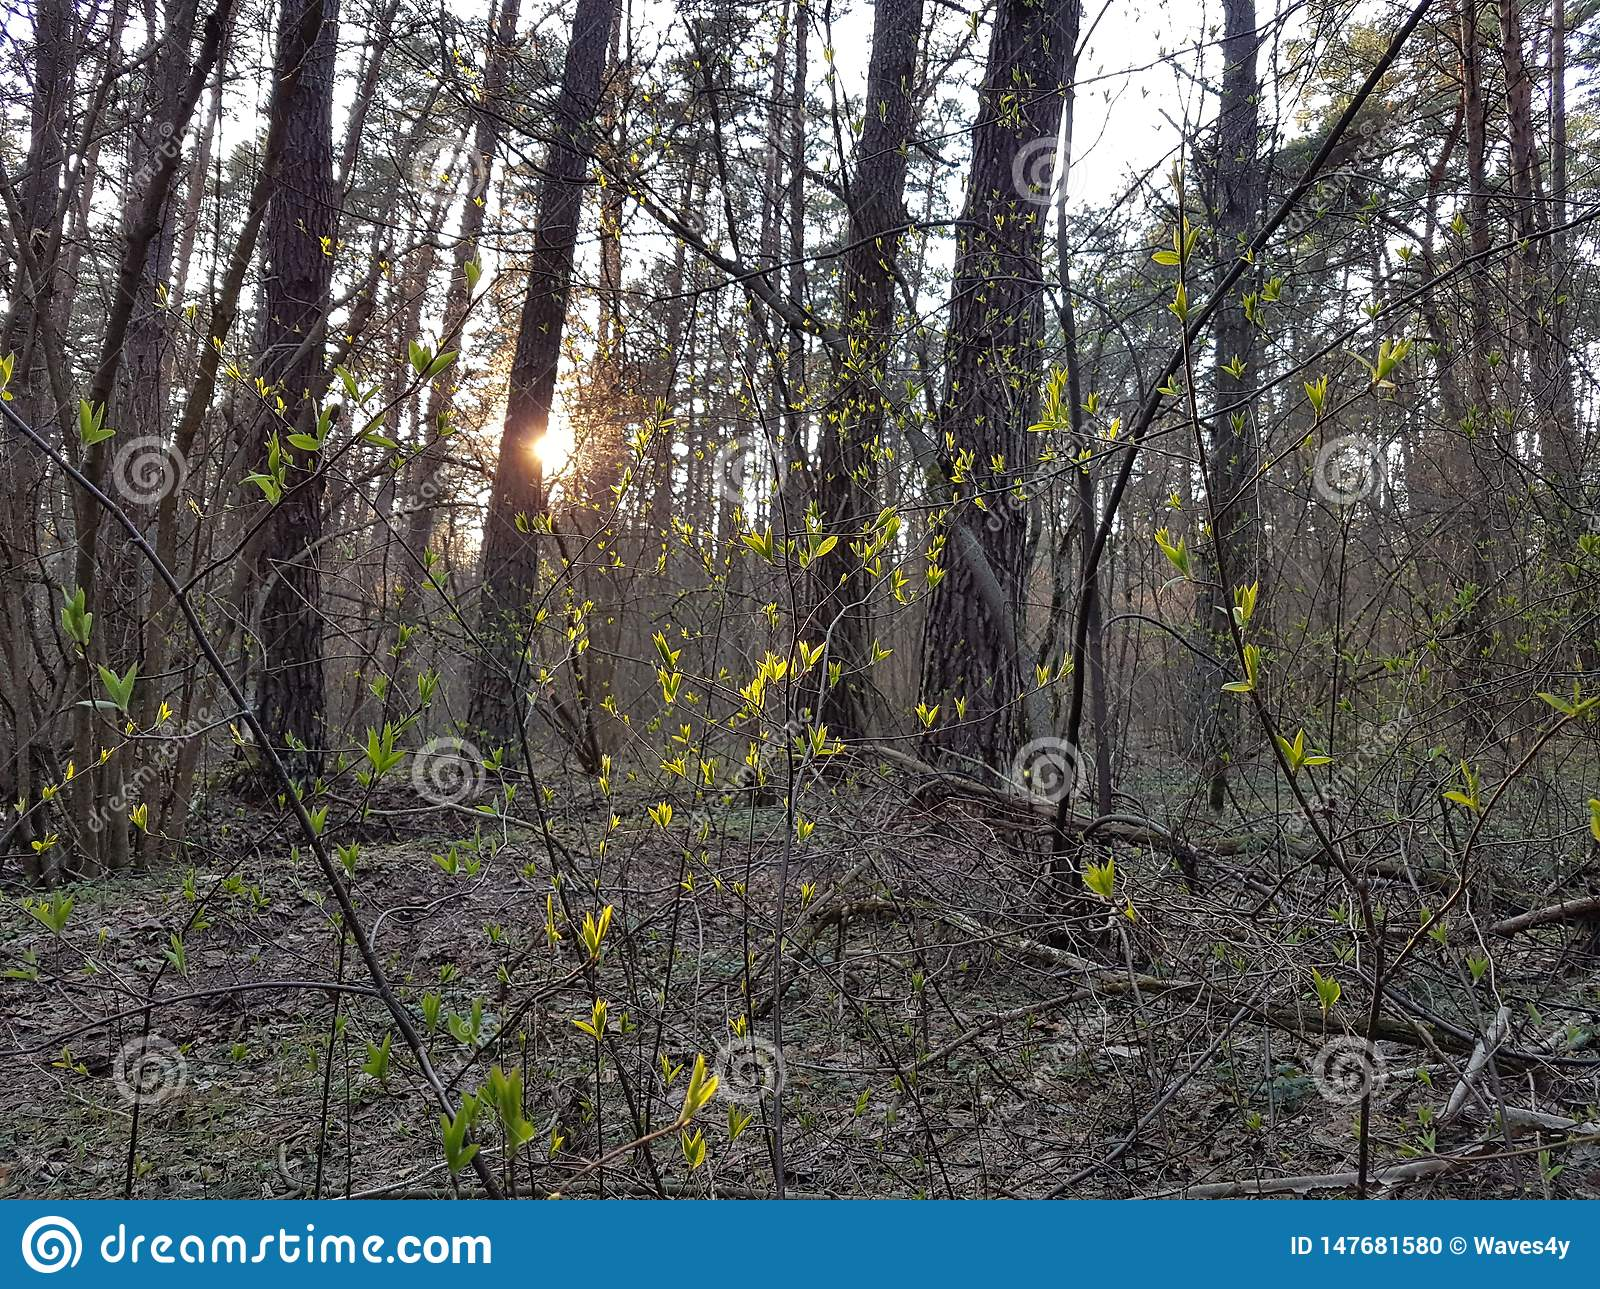 Warm evening, sun shines through branches of the trees and backlights the numerous greenish new leaves.